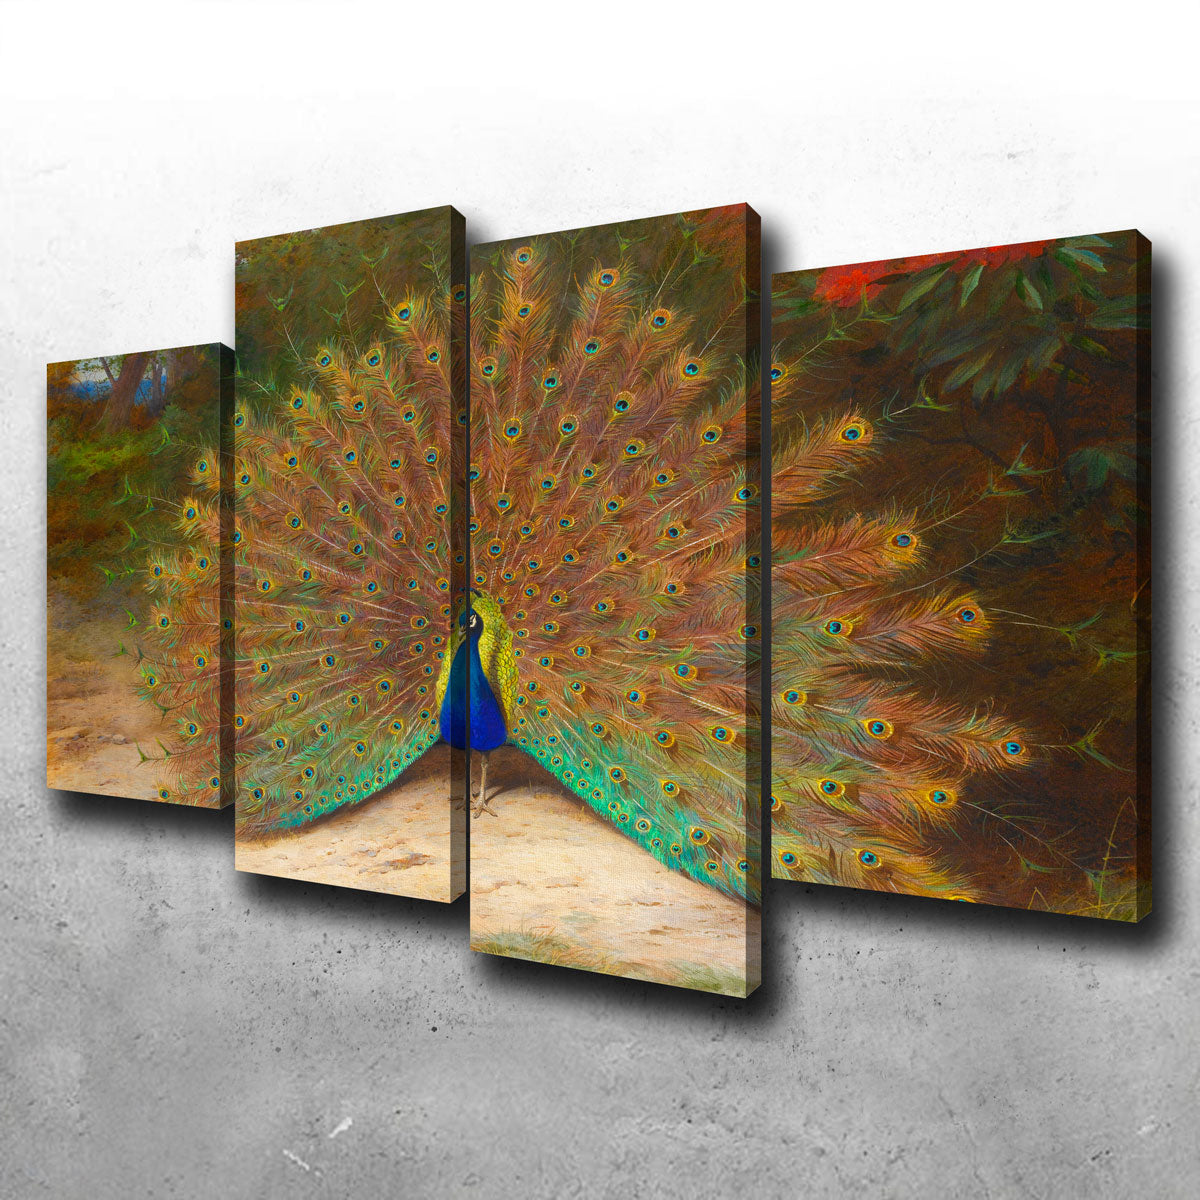 Peacock and Peacock Butterly Canvas Set